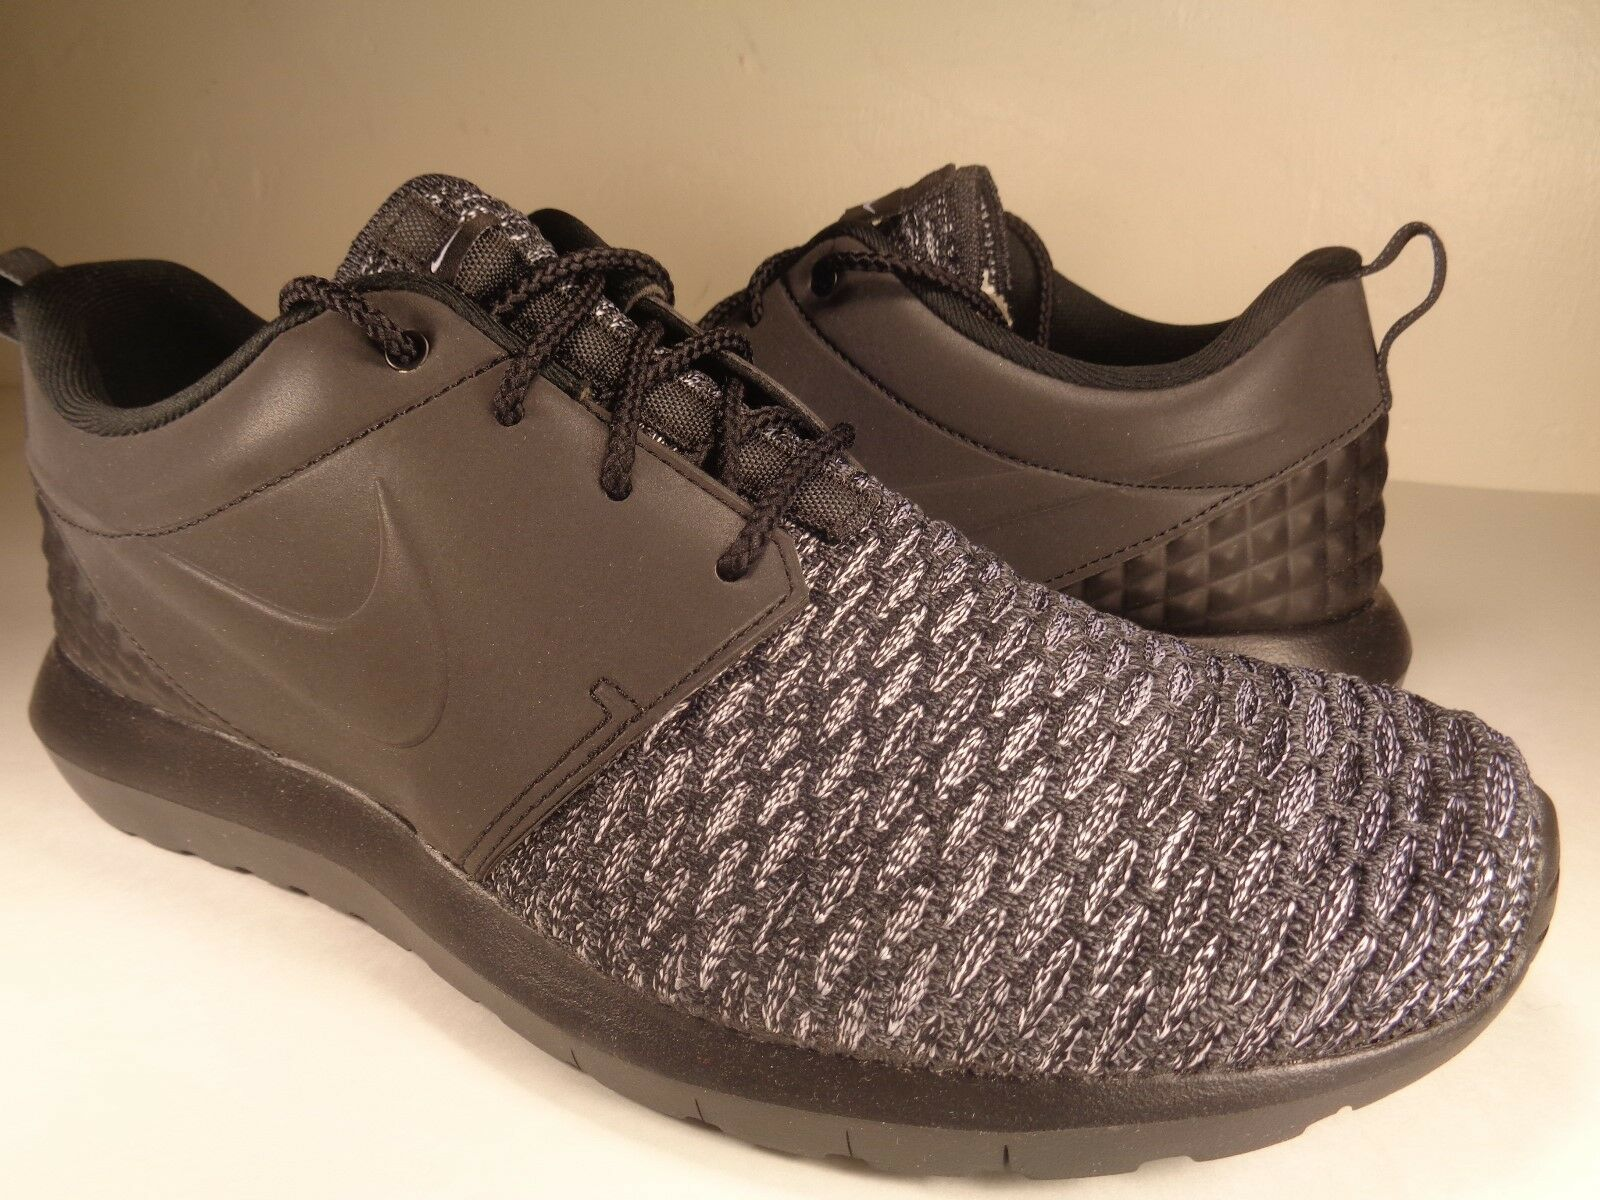 Nike Roshe NM Flyknit PRM Reflective Dark Grey Black White Price reduction The most popular shoes for men and women